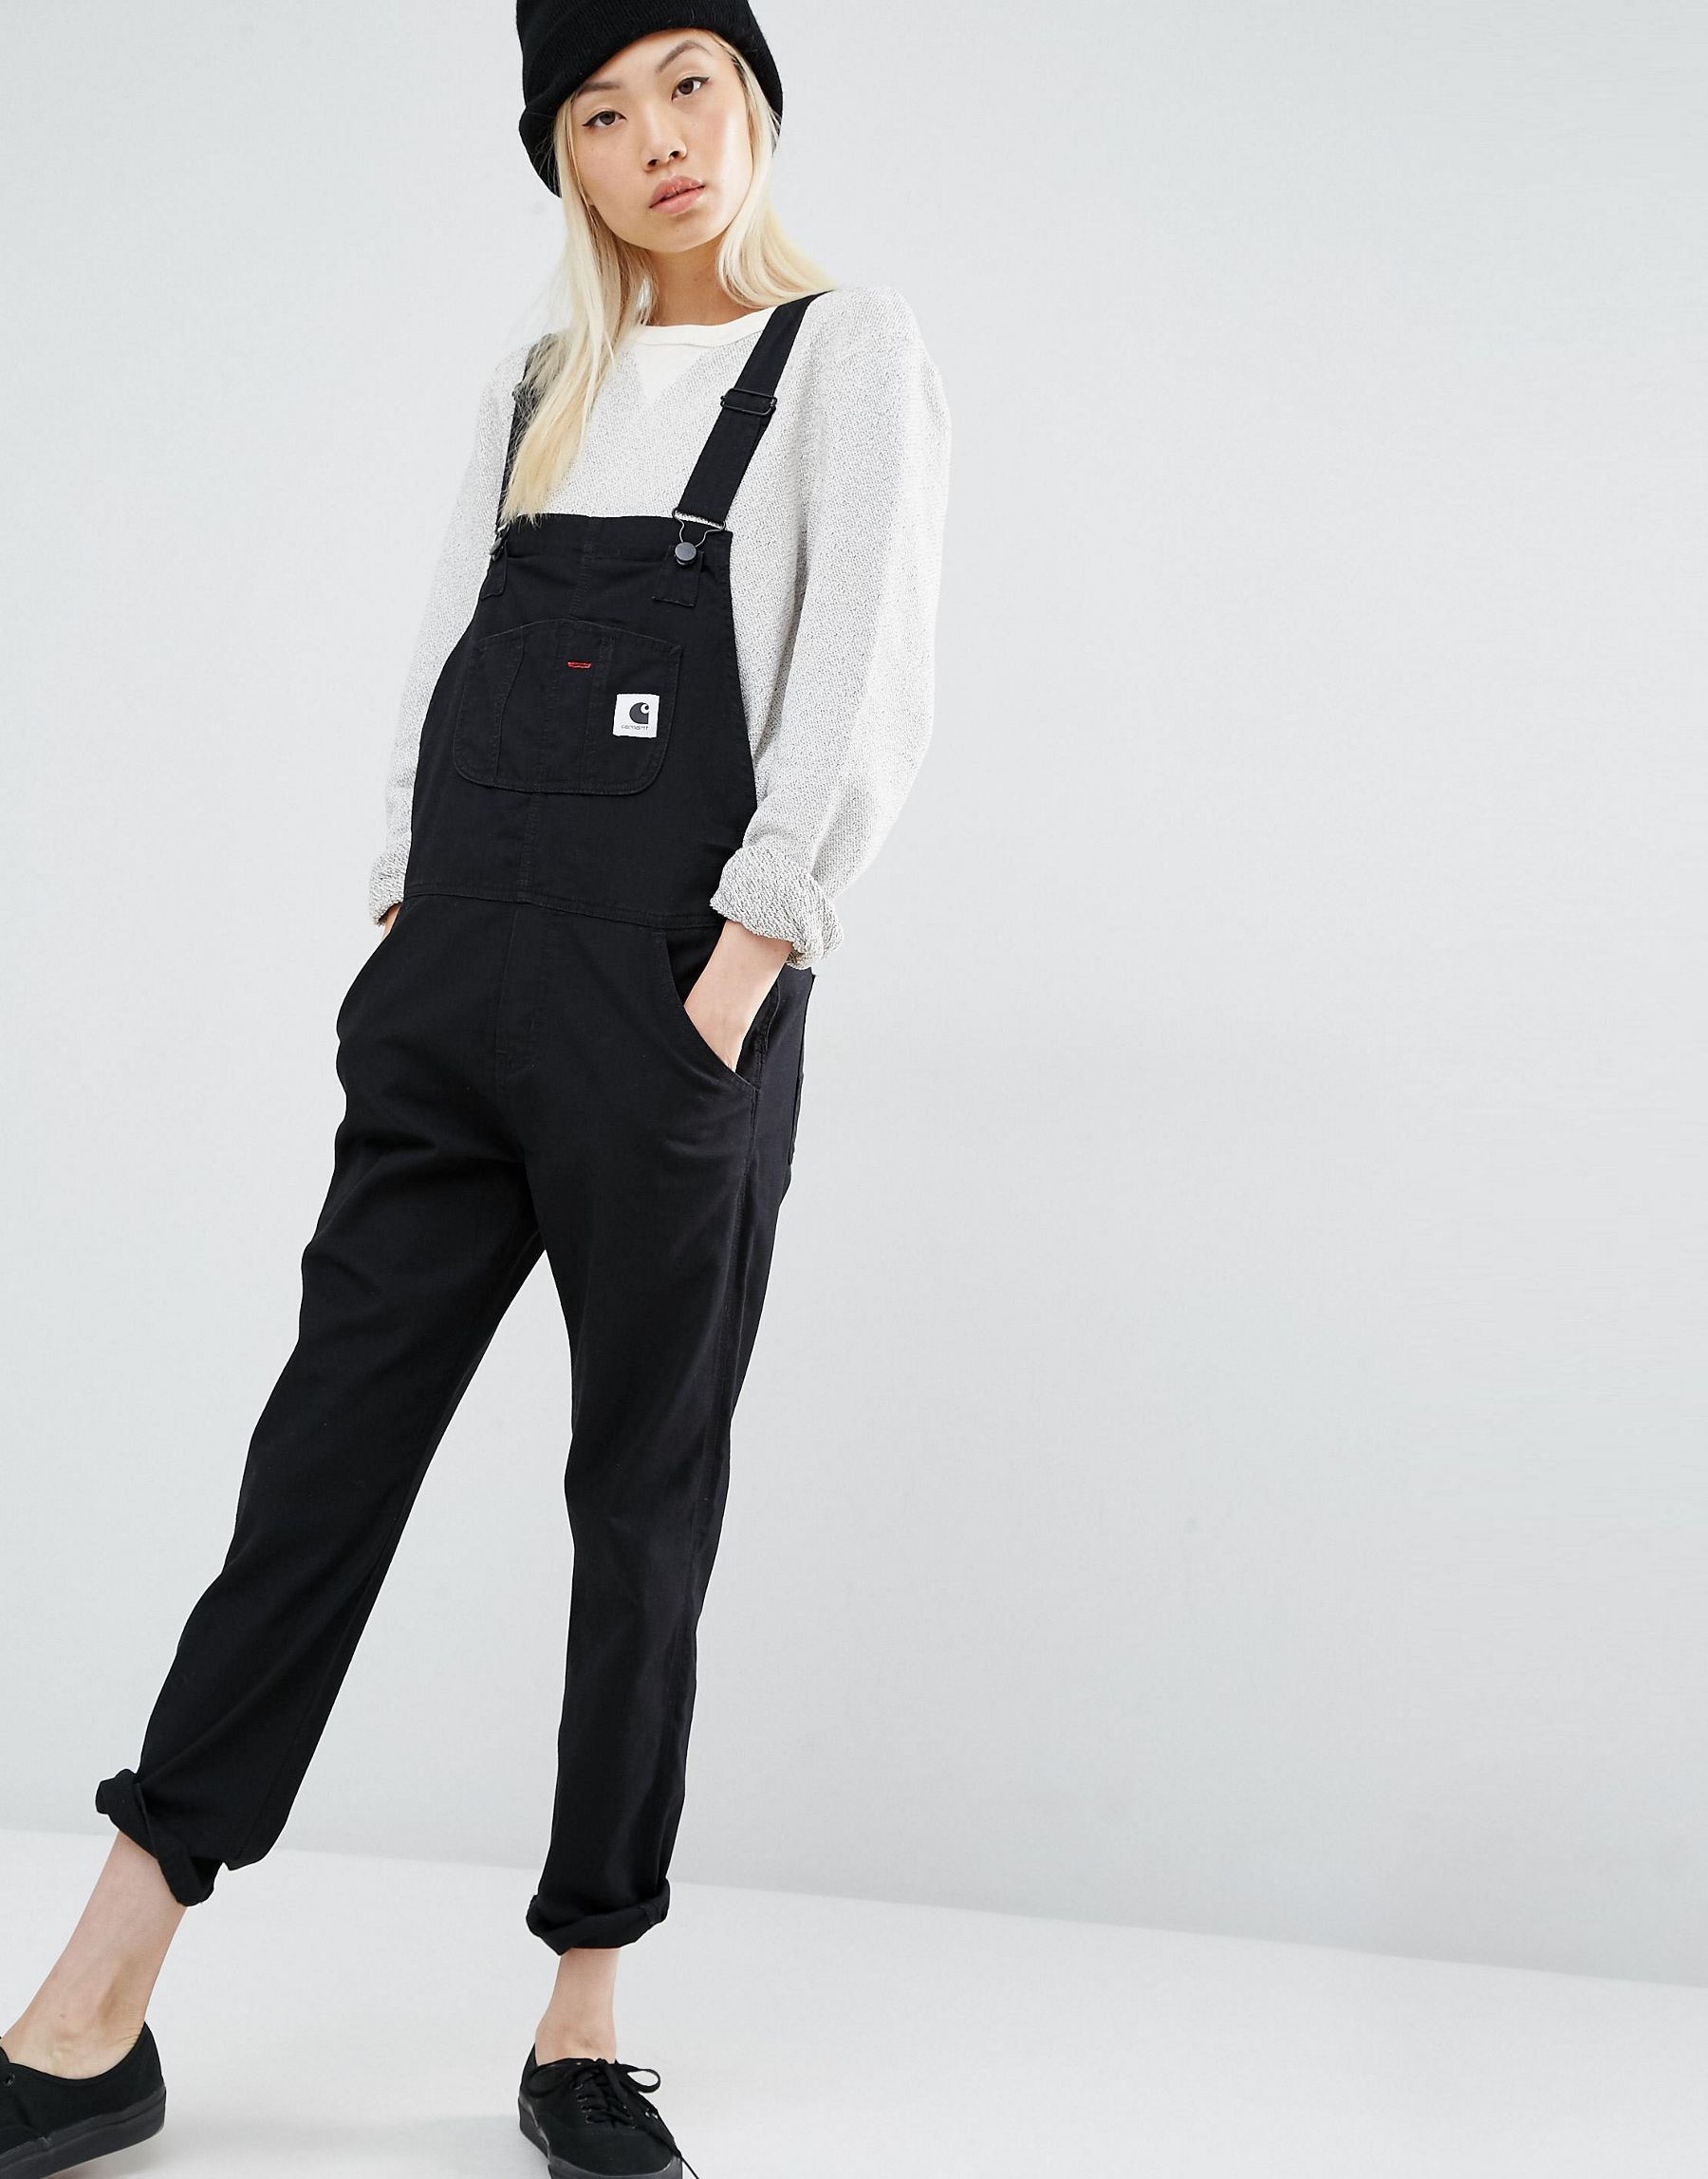 aaa8ababd08ef Carhartt WIP Bib Overall Dungarees With Front Logo in Black - Lyst